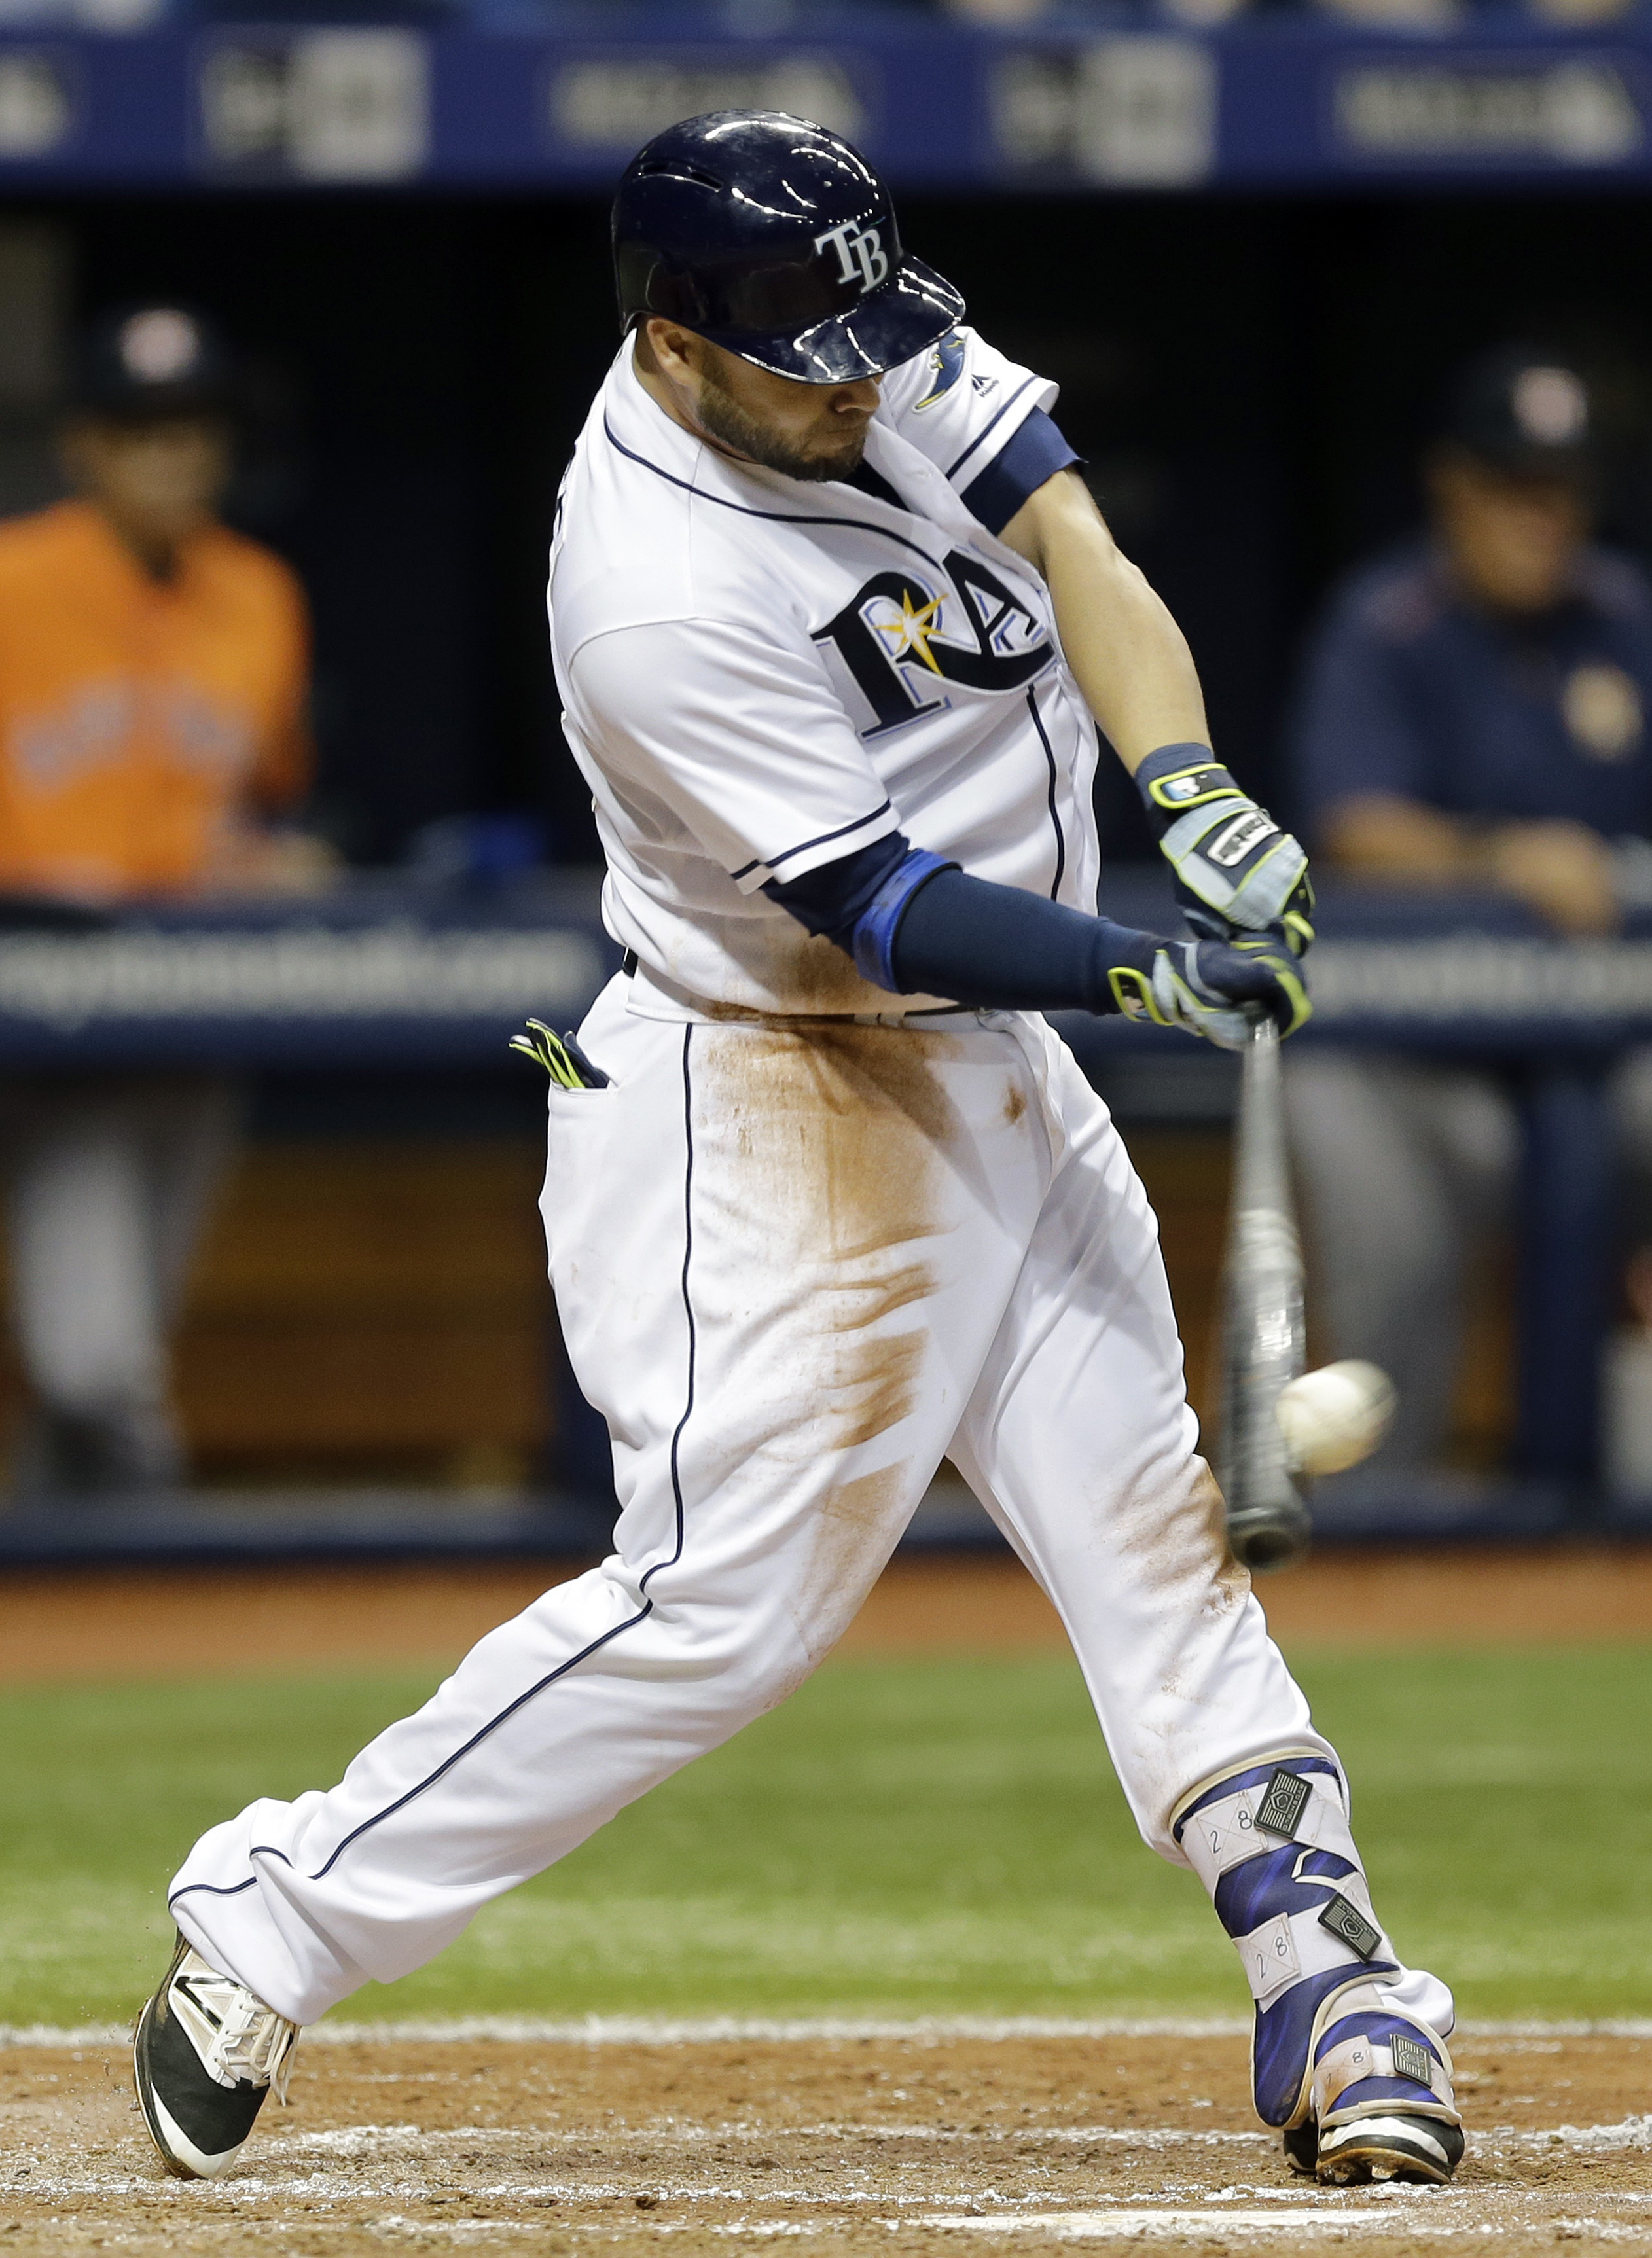 Tampa Bay Rays' Steve Pearce connects for a double off Houston Astros starting pitcher Lance McCullers during the third inning of a baseball game Friday, June 10, 2016, in St. Petersburg, Fla. (AP Photo/Chris O'Meara)